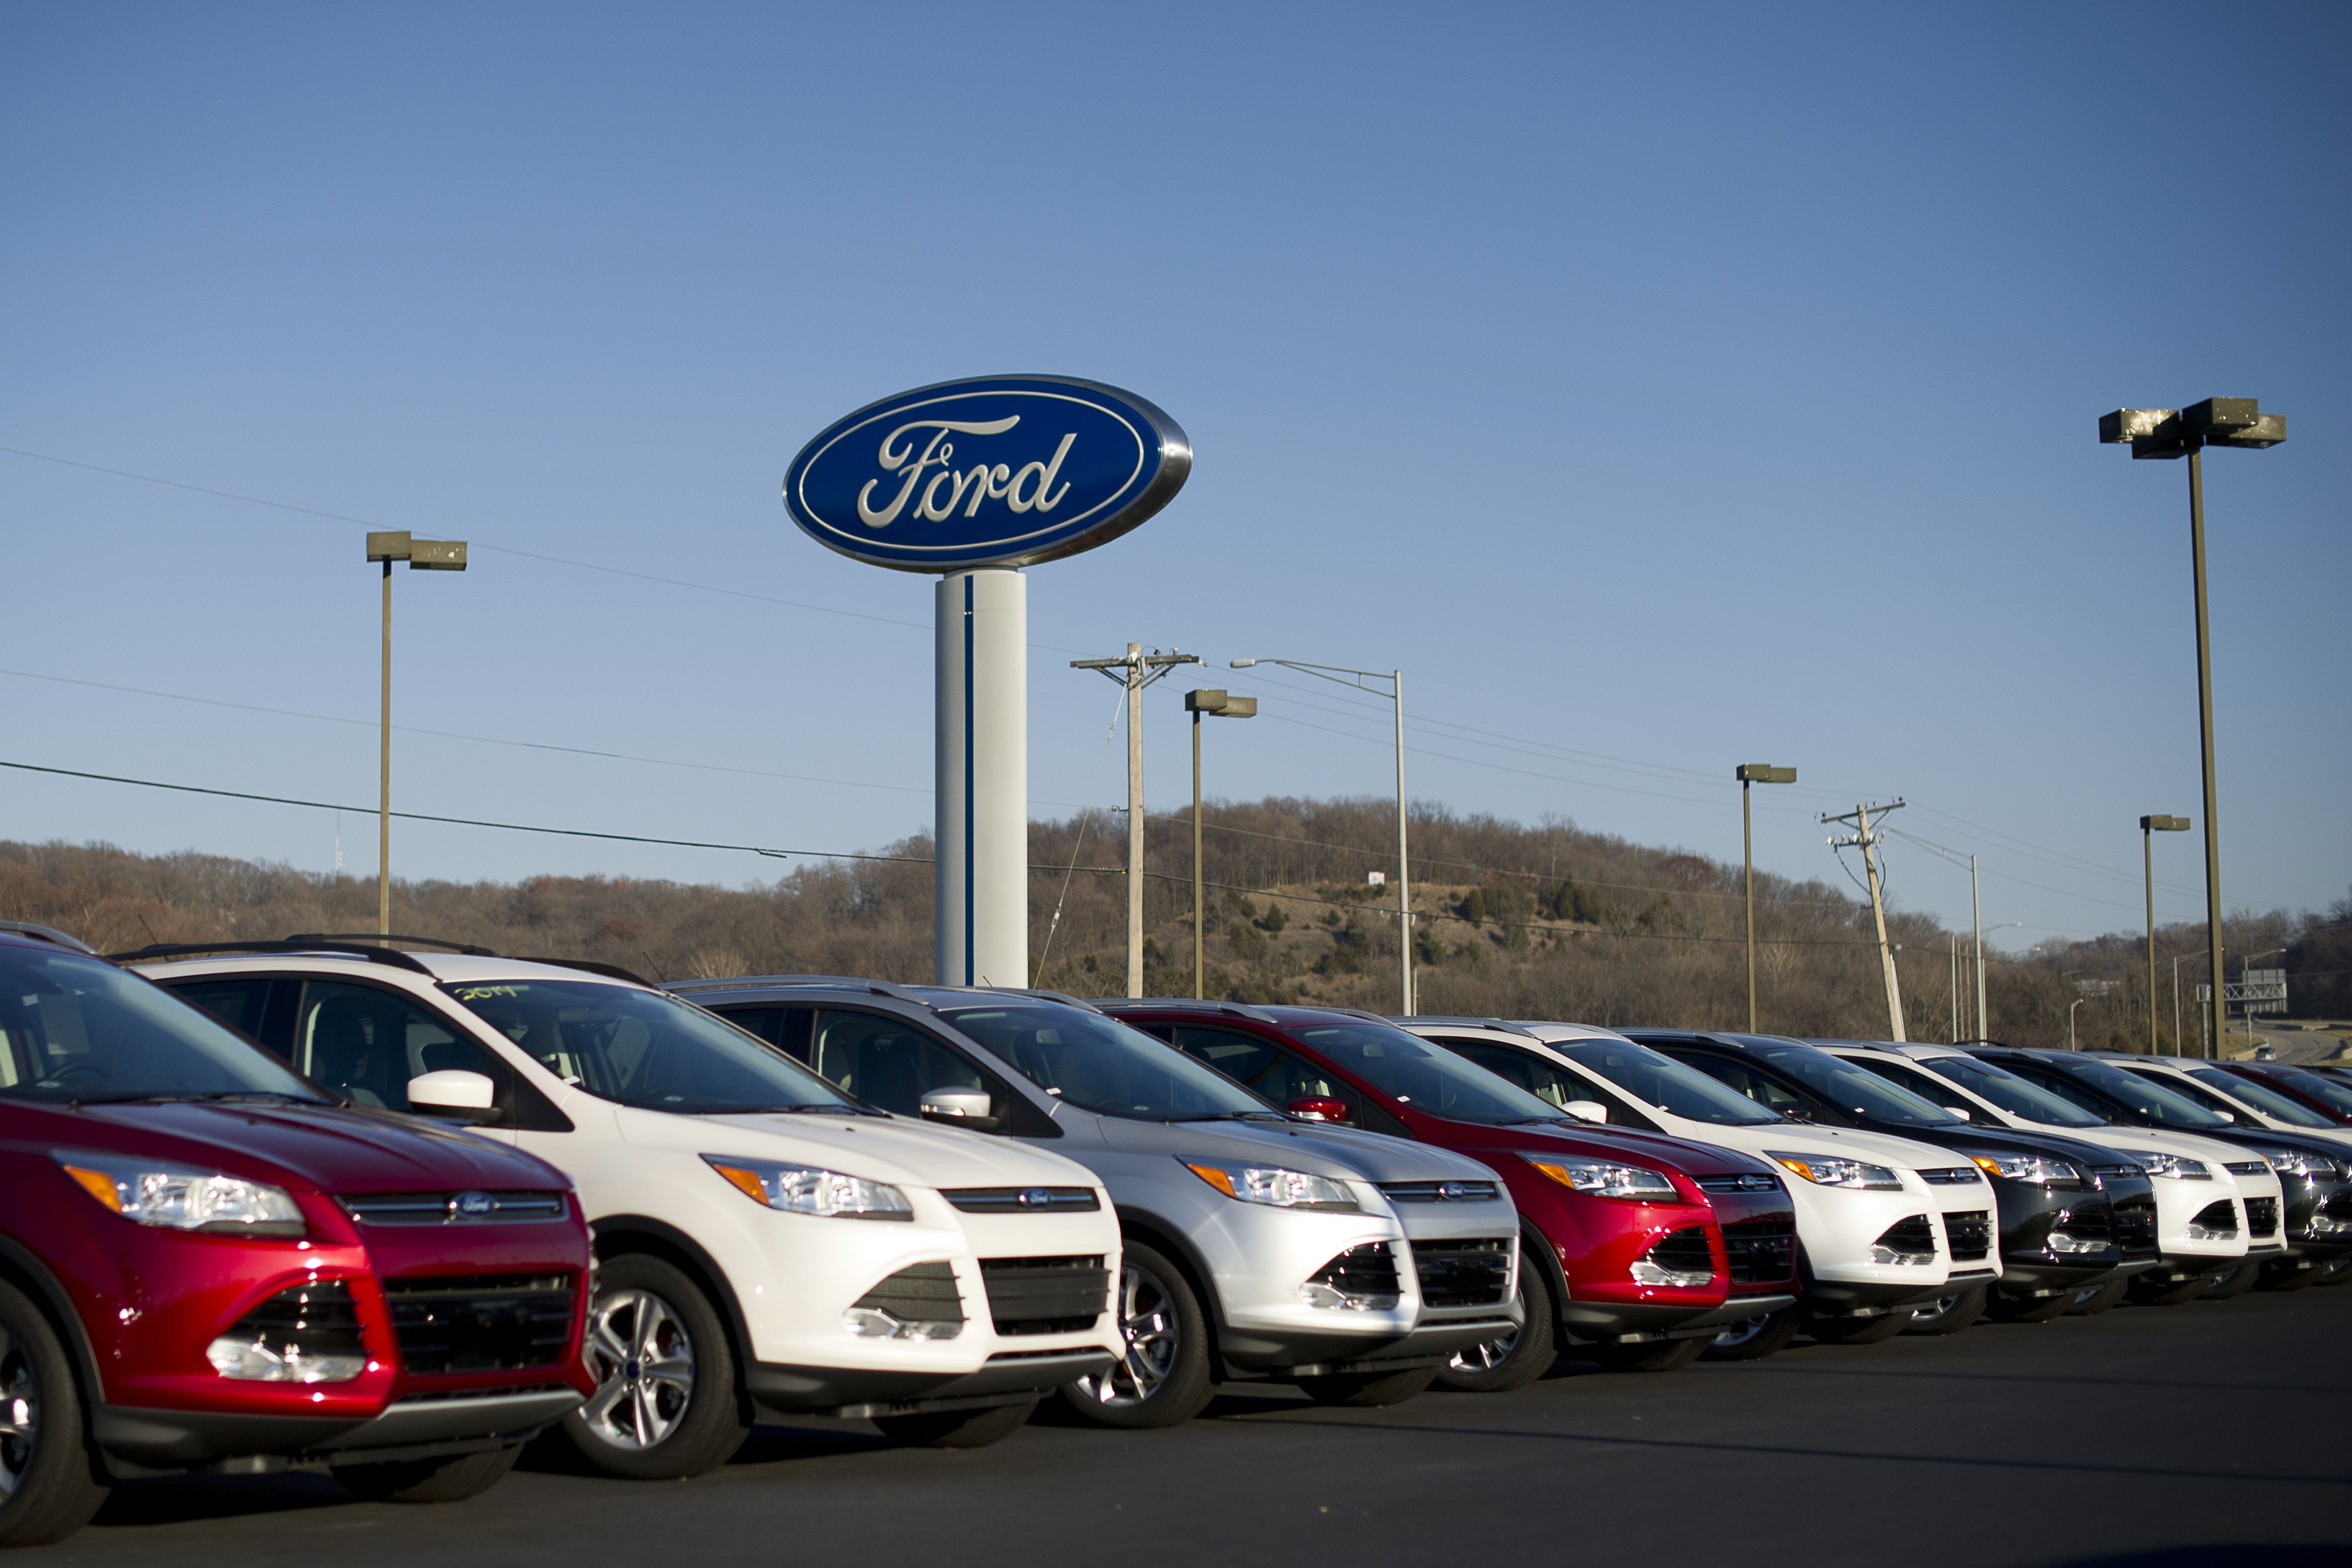 A row of 2014 Ford Escape vehicles sit on display at Uftring Ford in East Peoria, Illinois,  on Nov. 30, 2013.